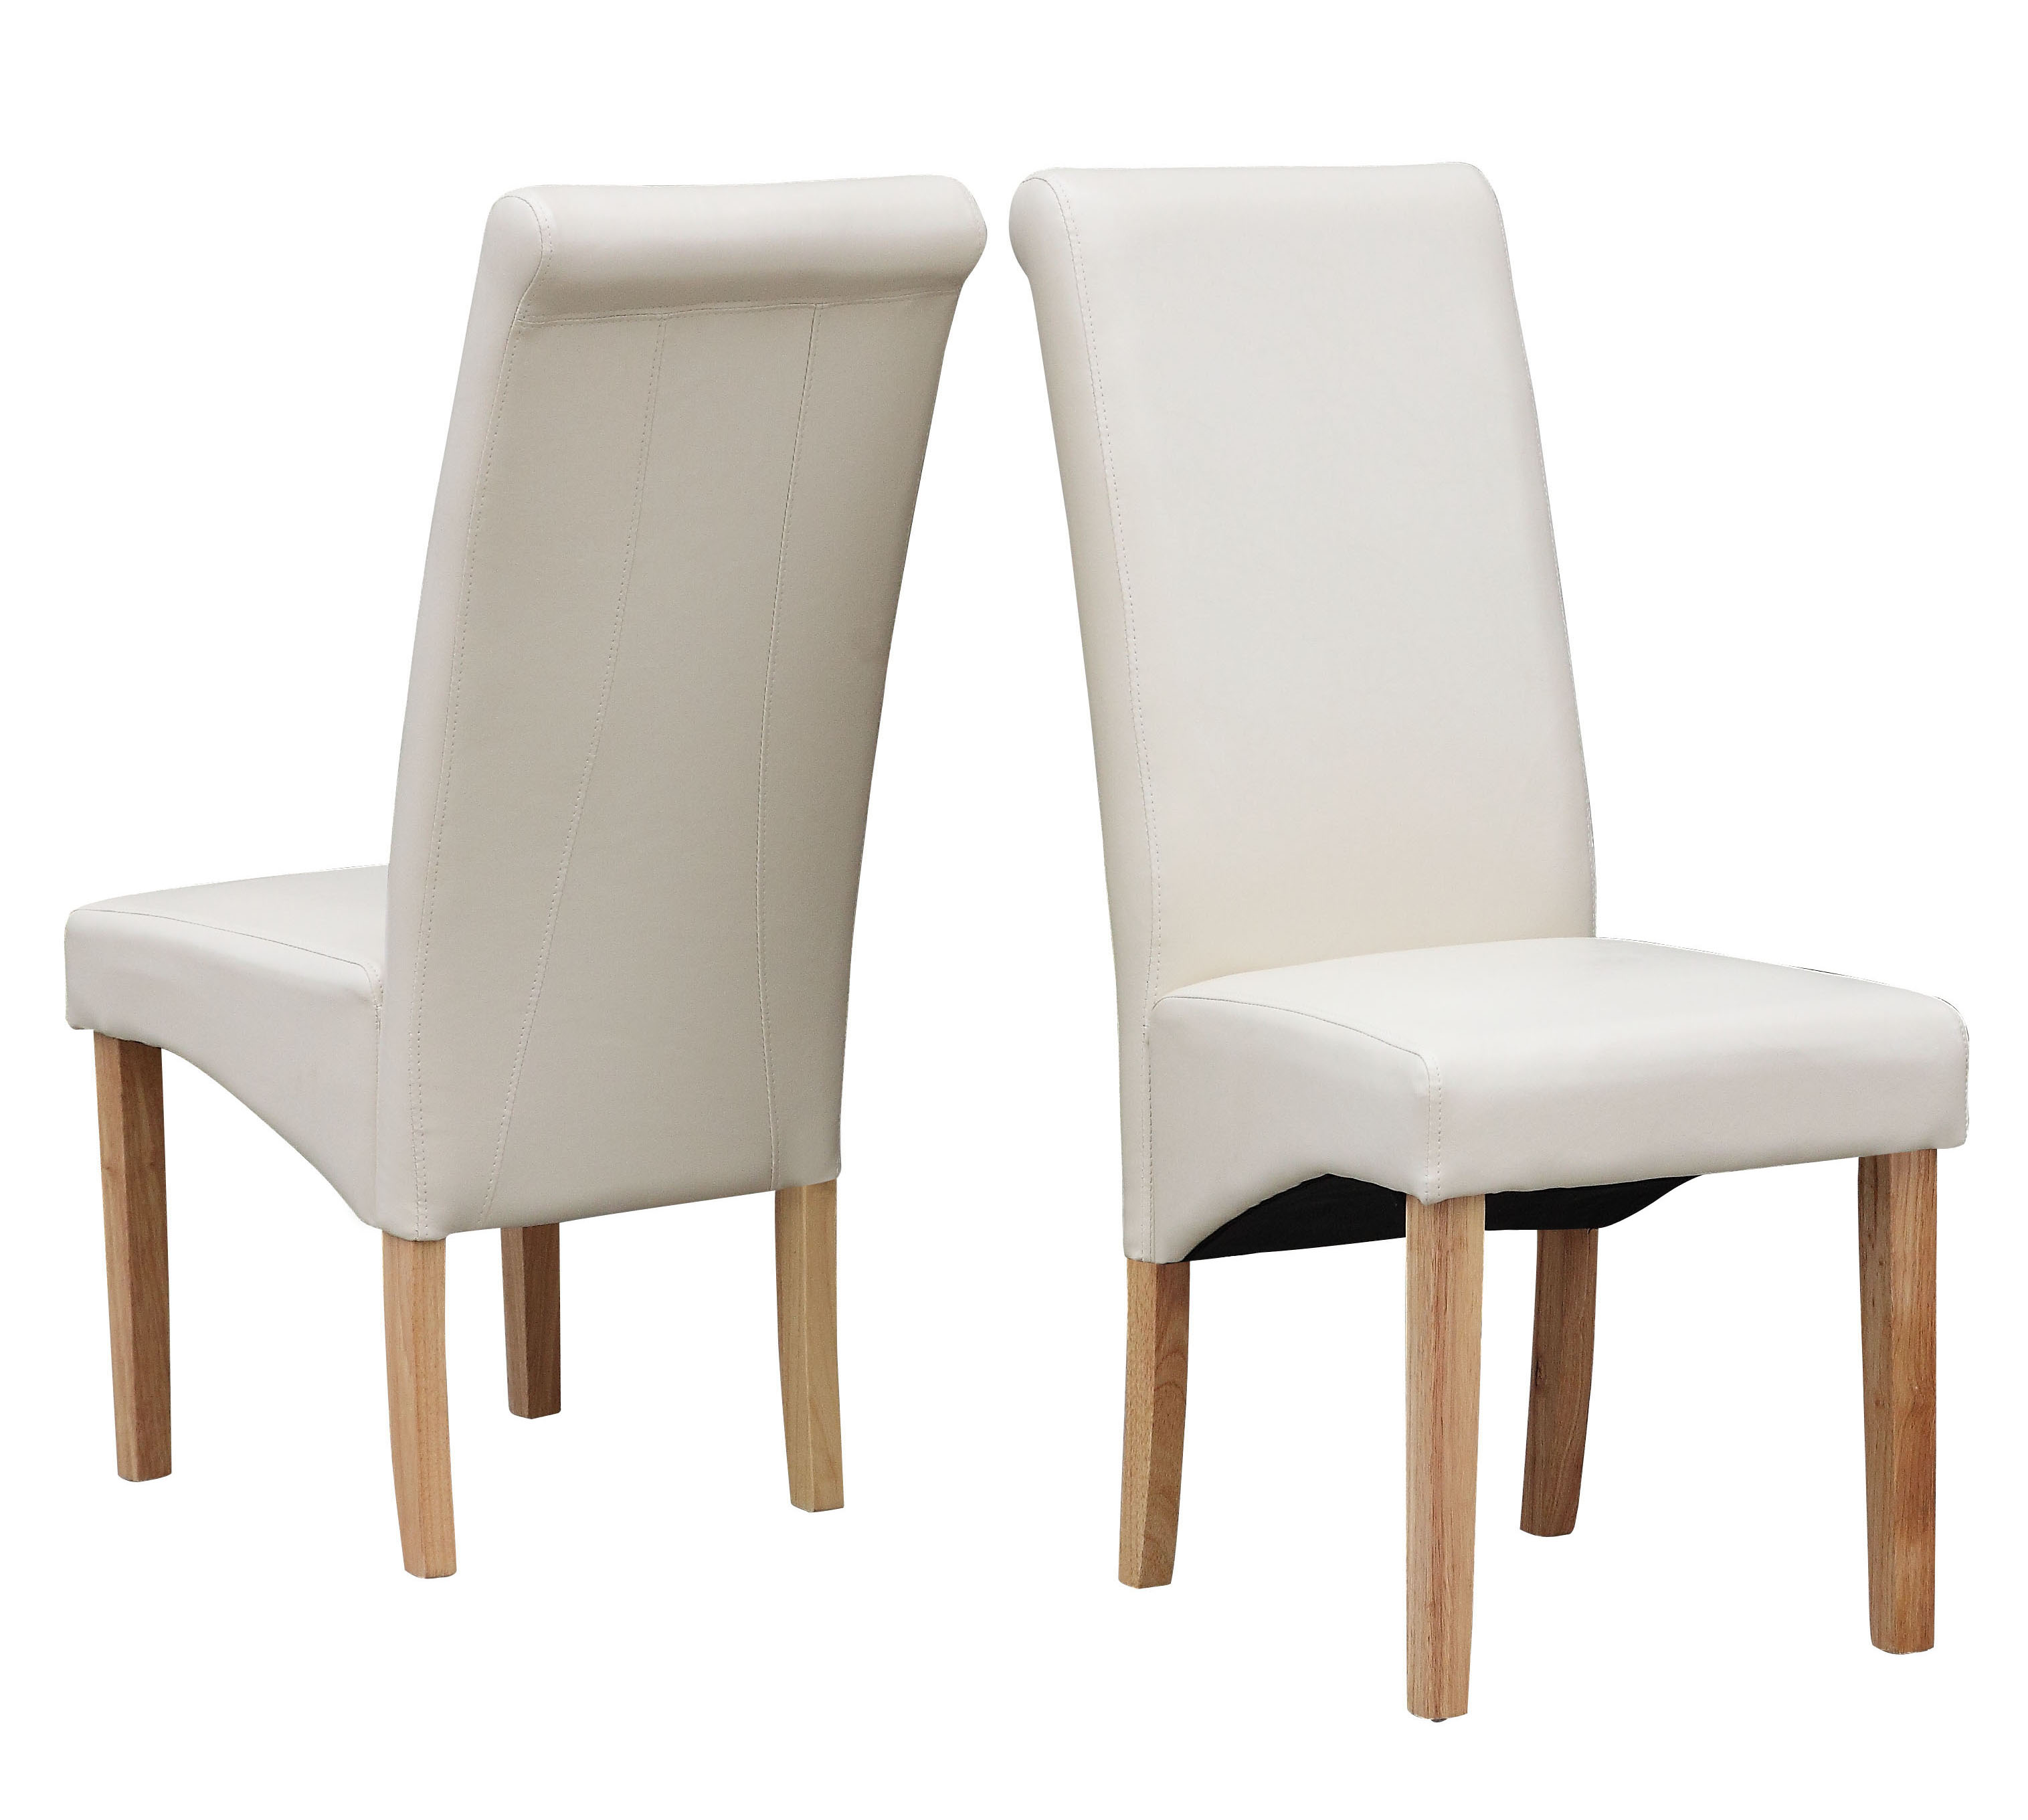 high back dining chairs restaurant supply cream modern room chair faux leather roll top